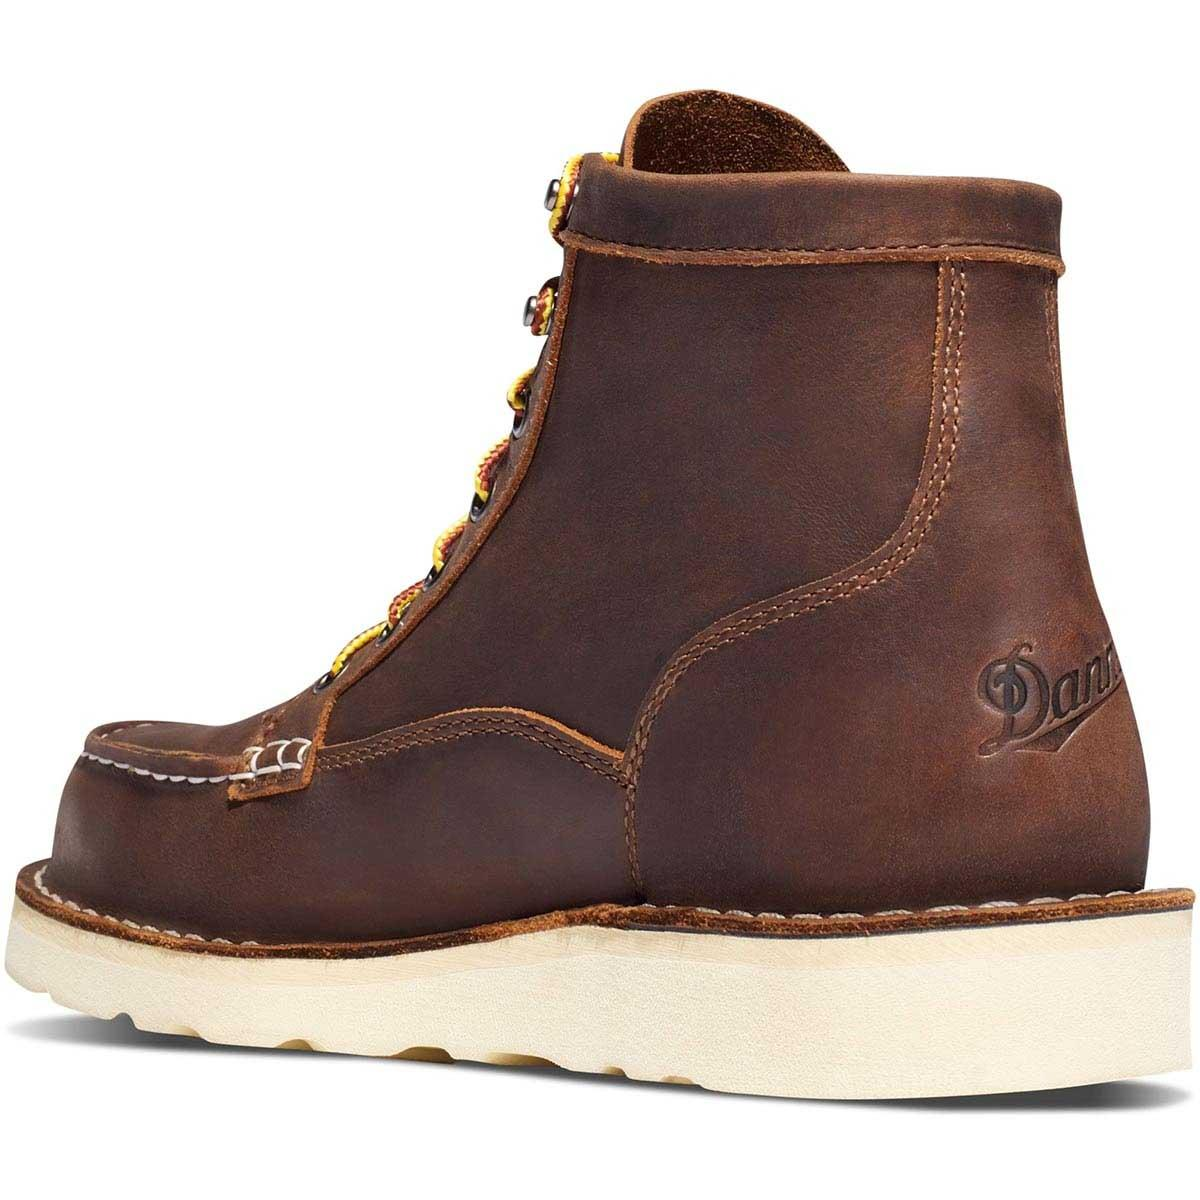 "Danner 6"" Bull Run Moc Toe Work Boot_6.jpg"